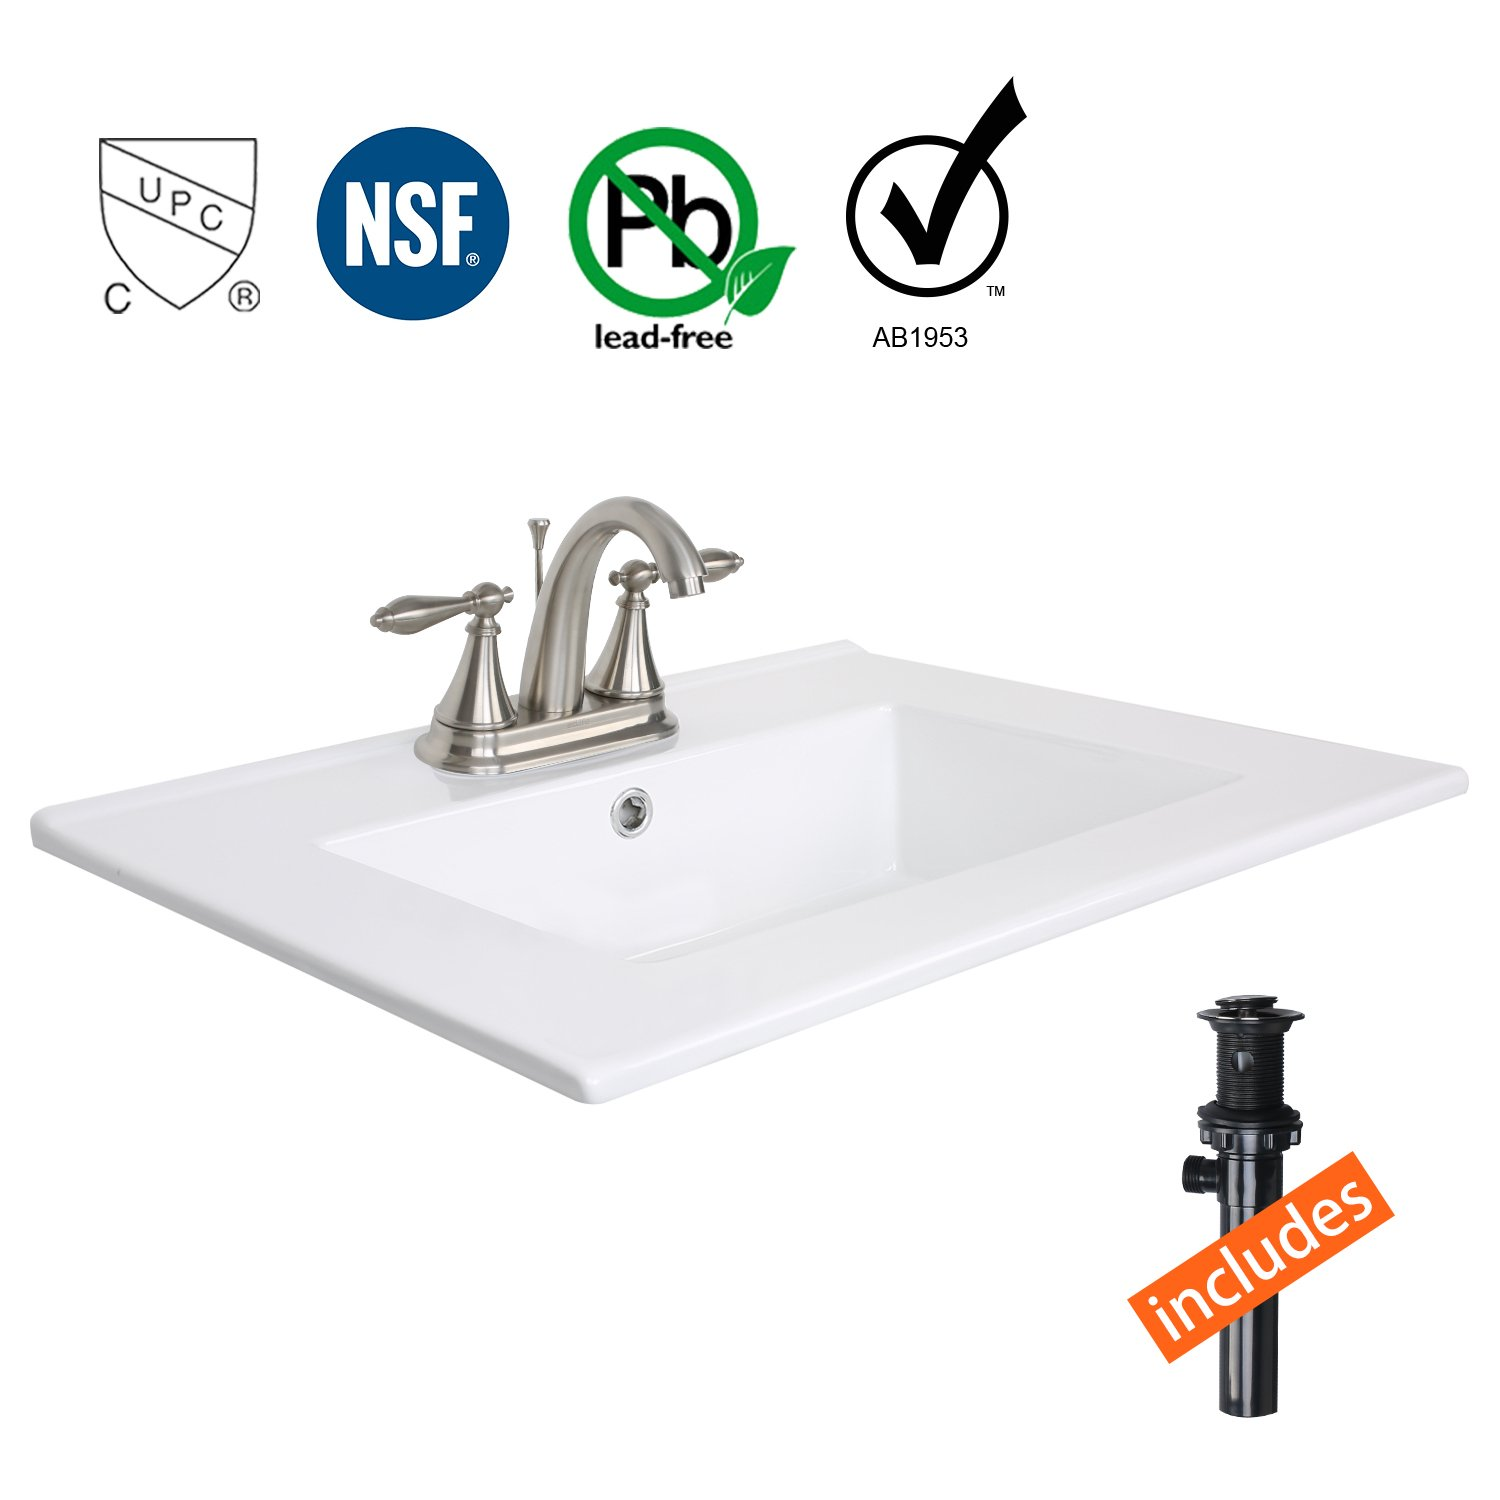 Eclife 24'' Drop in Rectangle Bathroom White Ceramic Sink Top Countertop with CUPC&NSF&AB1953&Lead Free High Arc Temp Control 3 Head Faucet T0102 (Brushed Nickel 02)